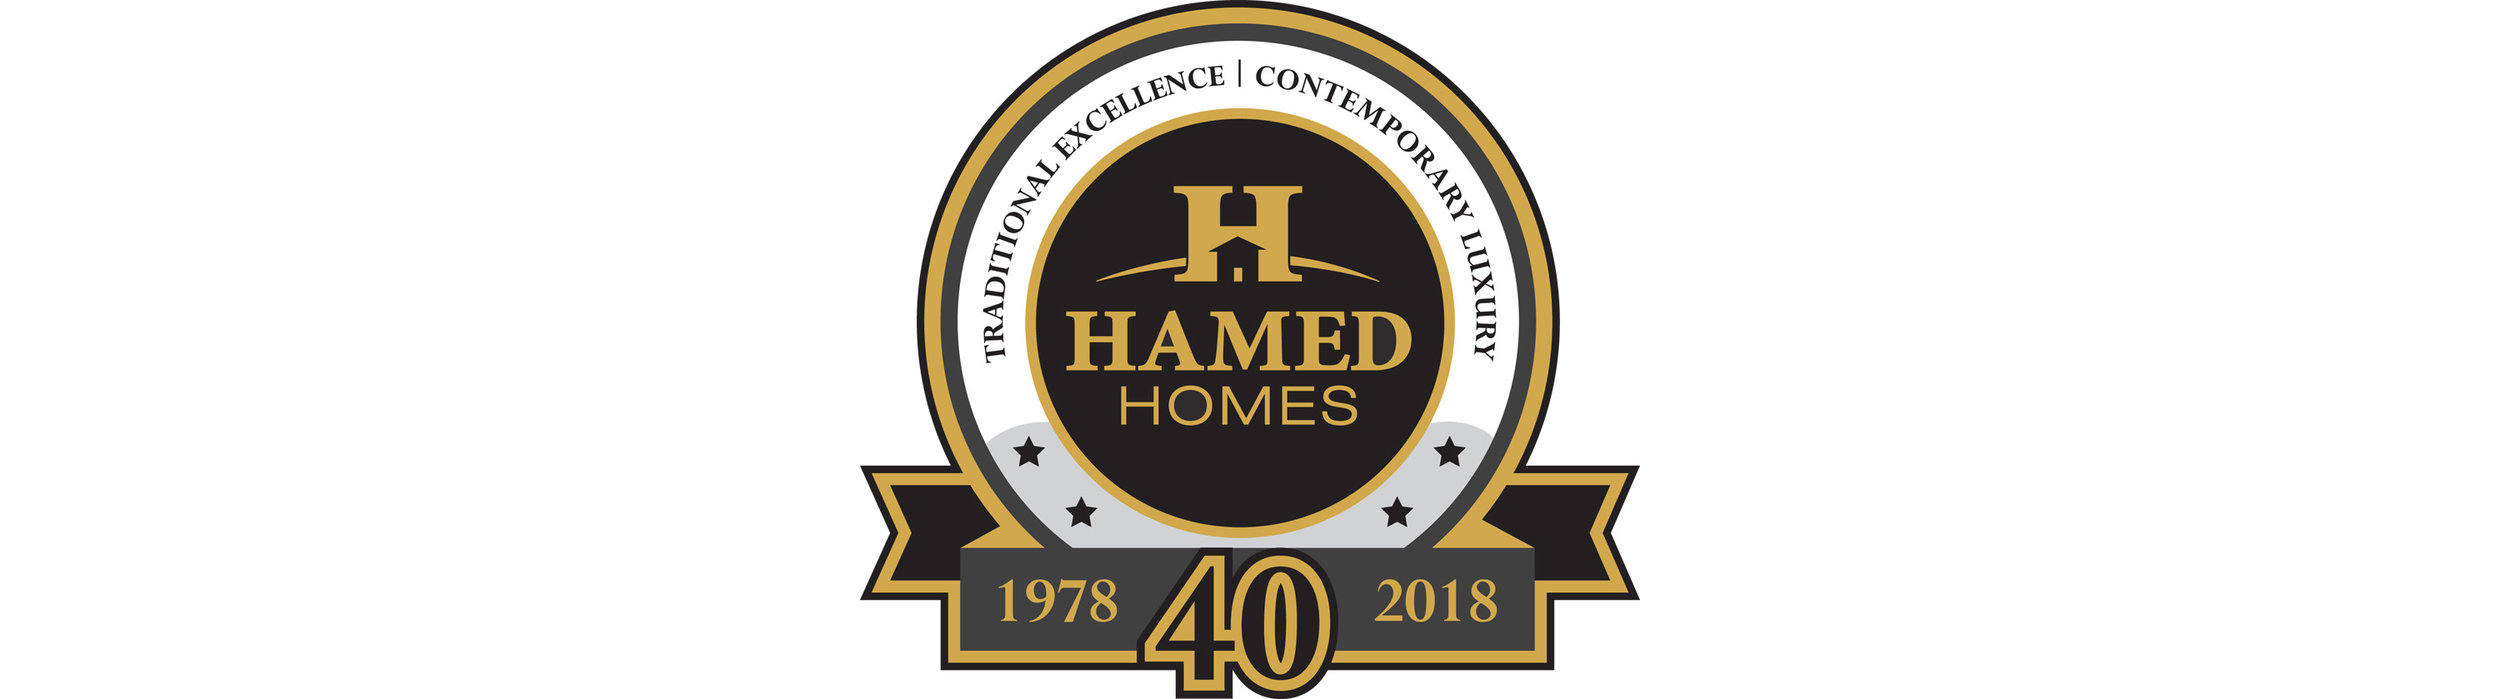 HAMED HOMES 40 LOGO - resize.jpg